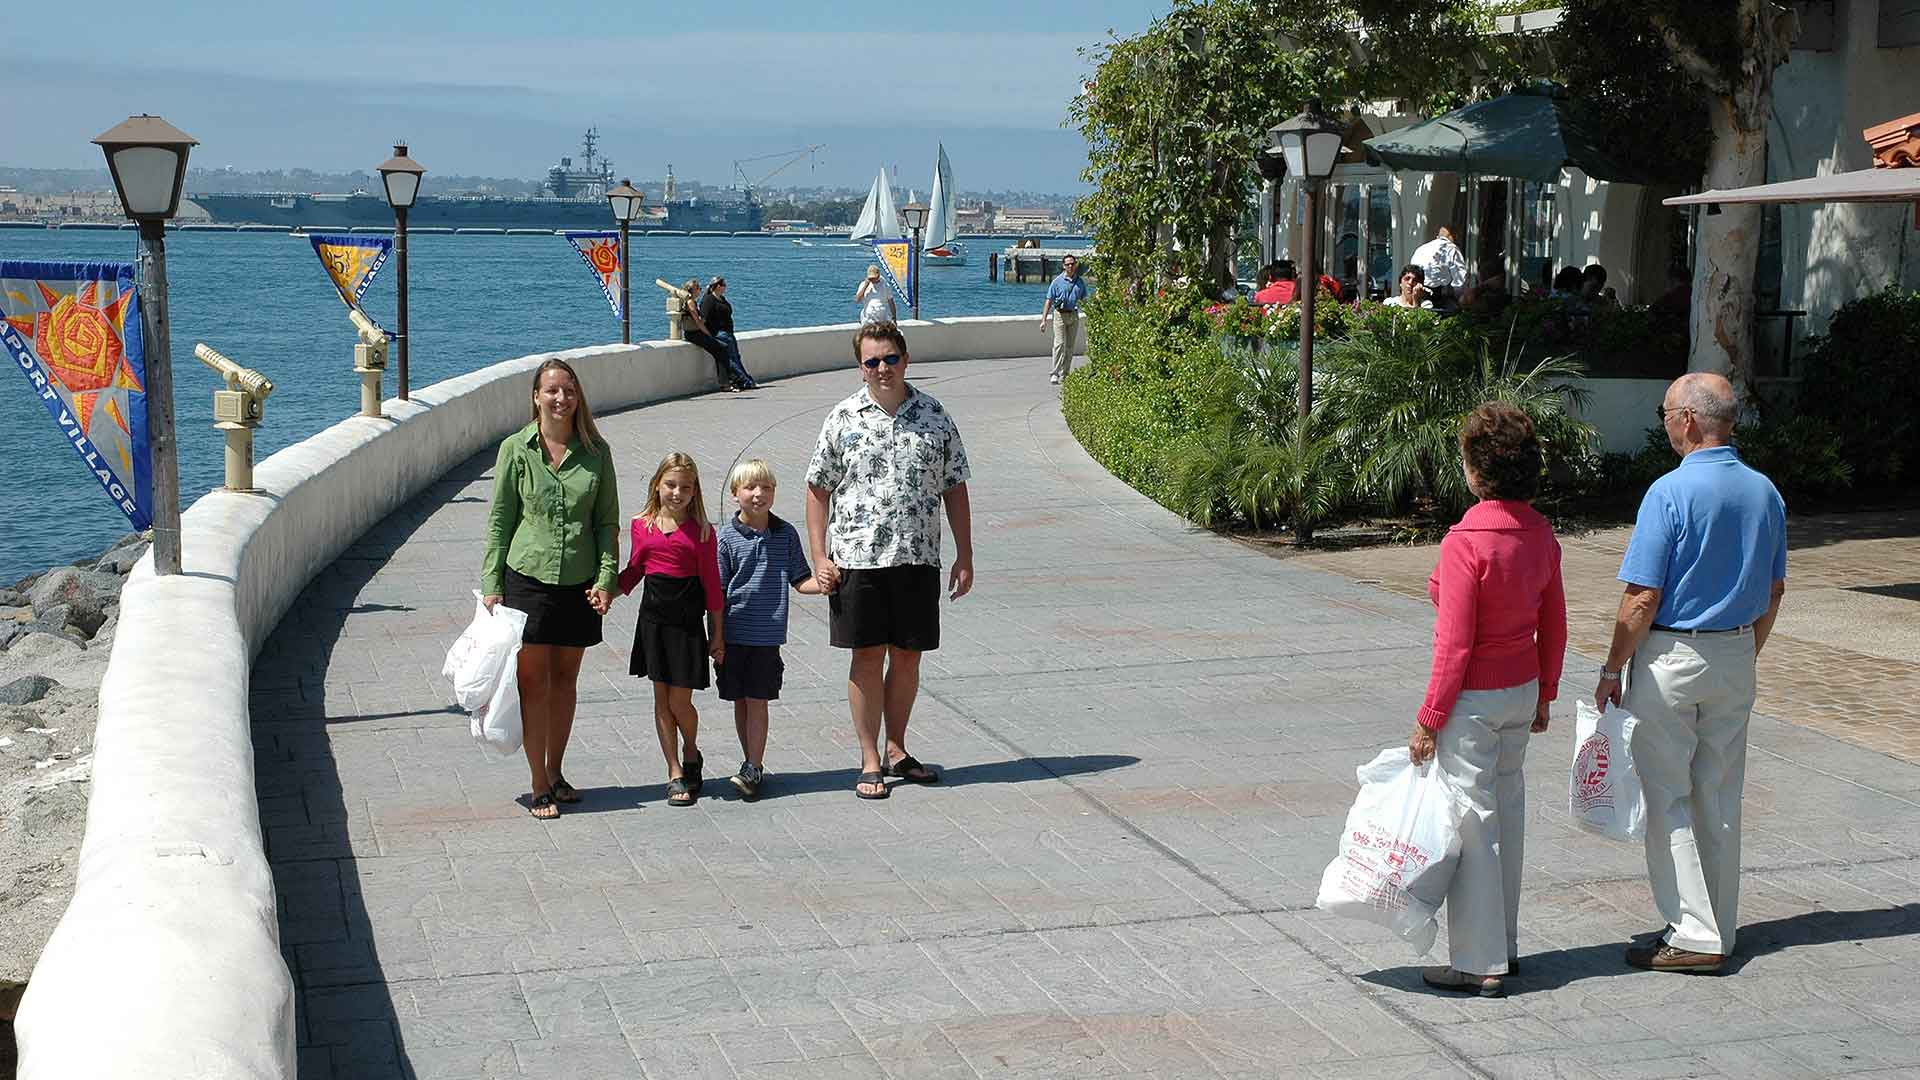 san diego seaport village tourists